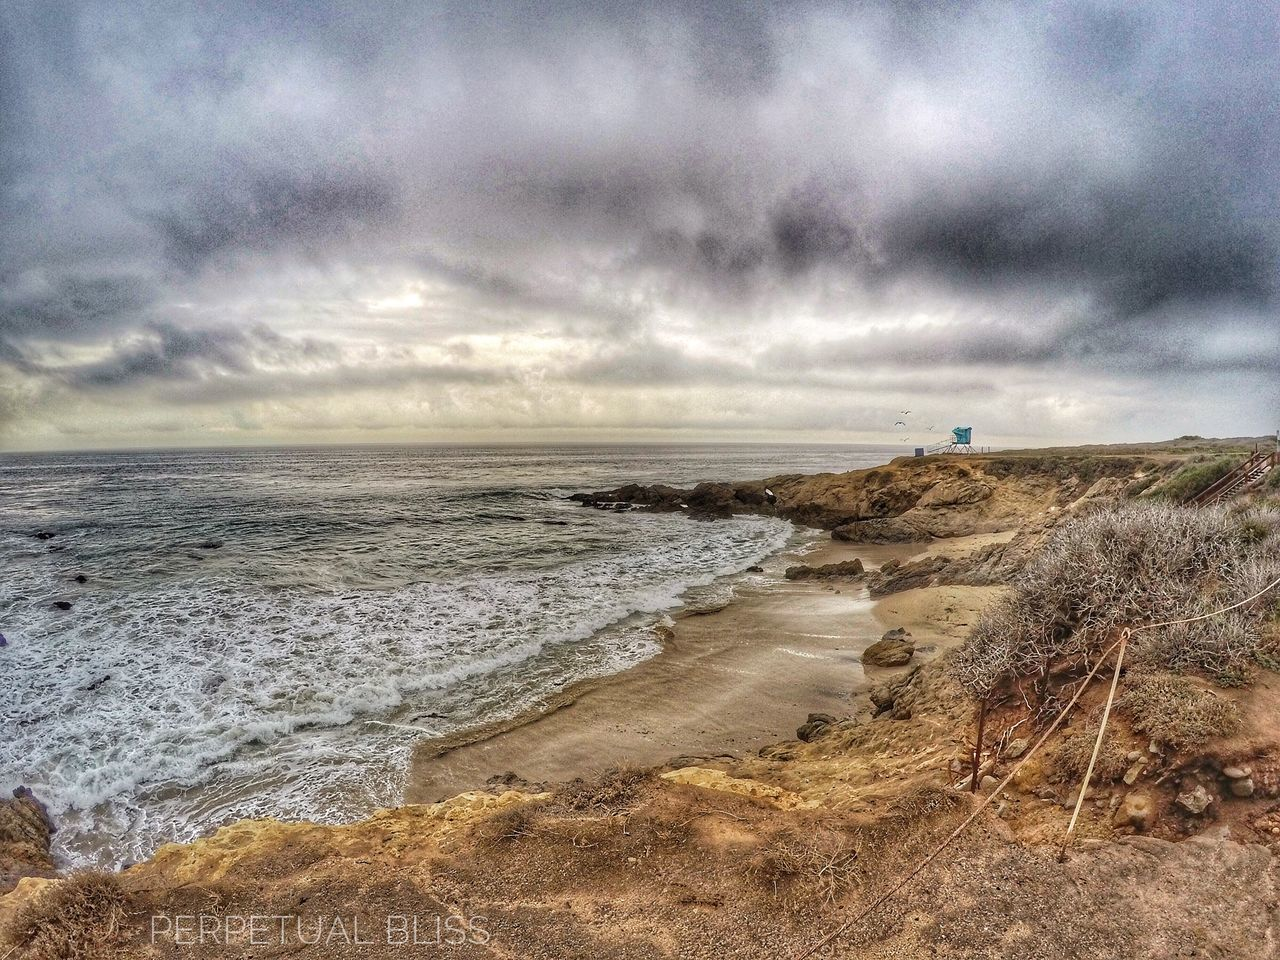 Malibu California Perpetual Bliss Sea Beach Cloud - Sky Nature Beauty In Nature Tranquility Outdoors Leo Carillo Love HDR Wave Oceanview Cliffs Gopro Malibu Coast Traveling Bliss